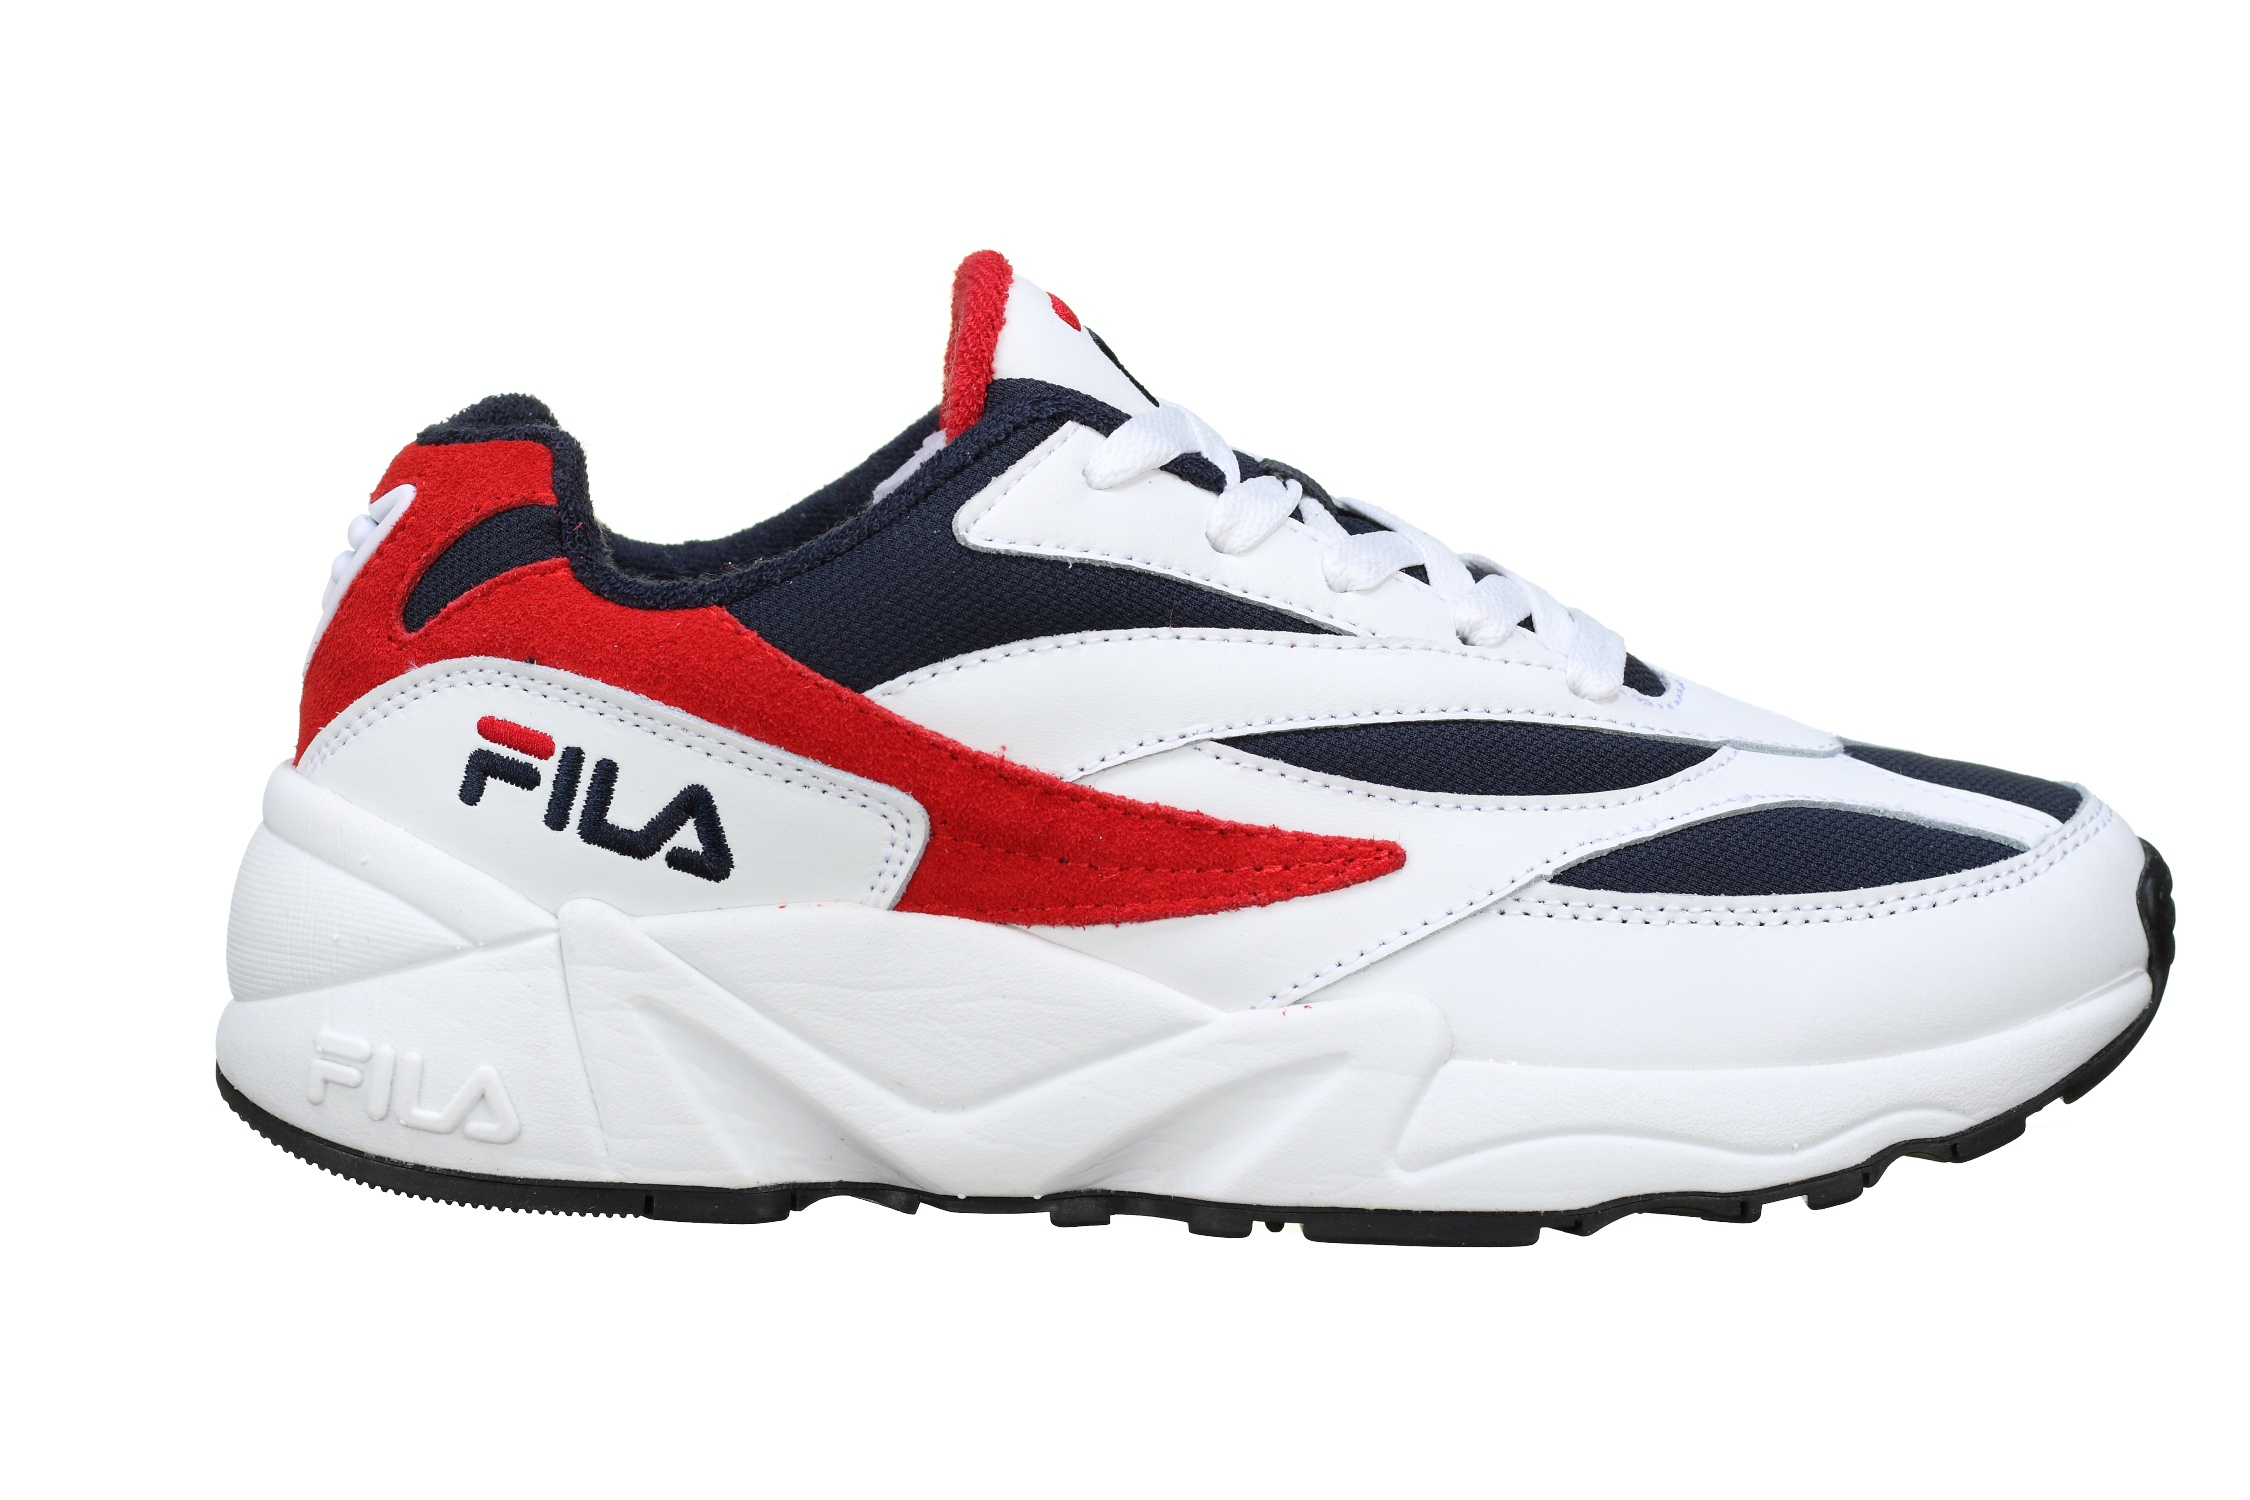 https://www.leadermode.com/176902/fila-v94m-low-01m-white.jpg